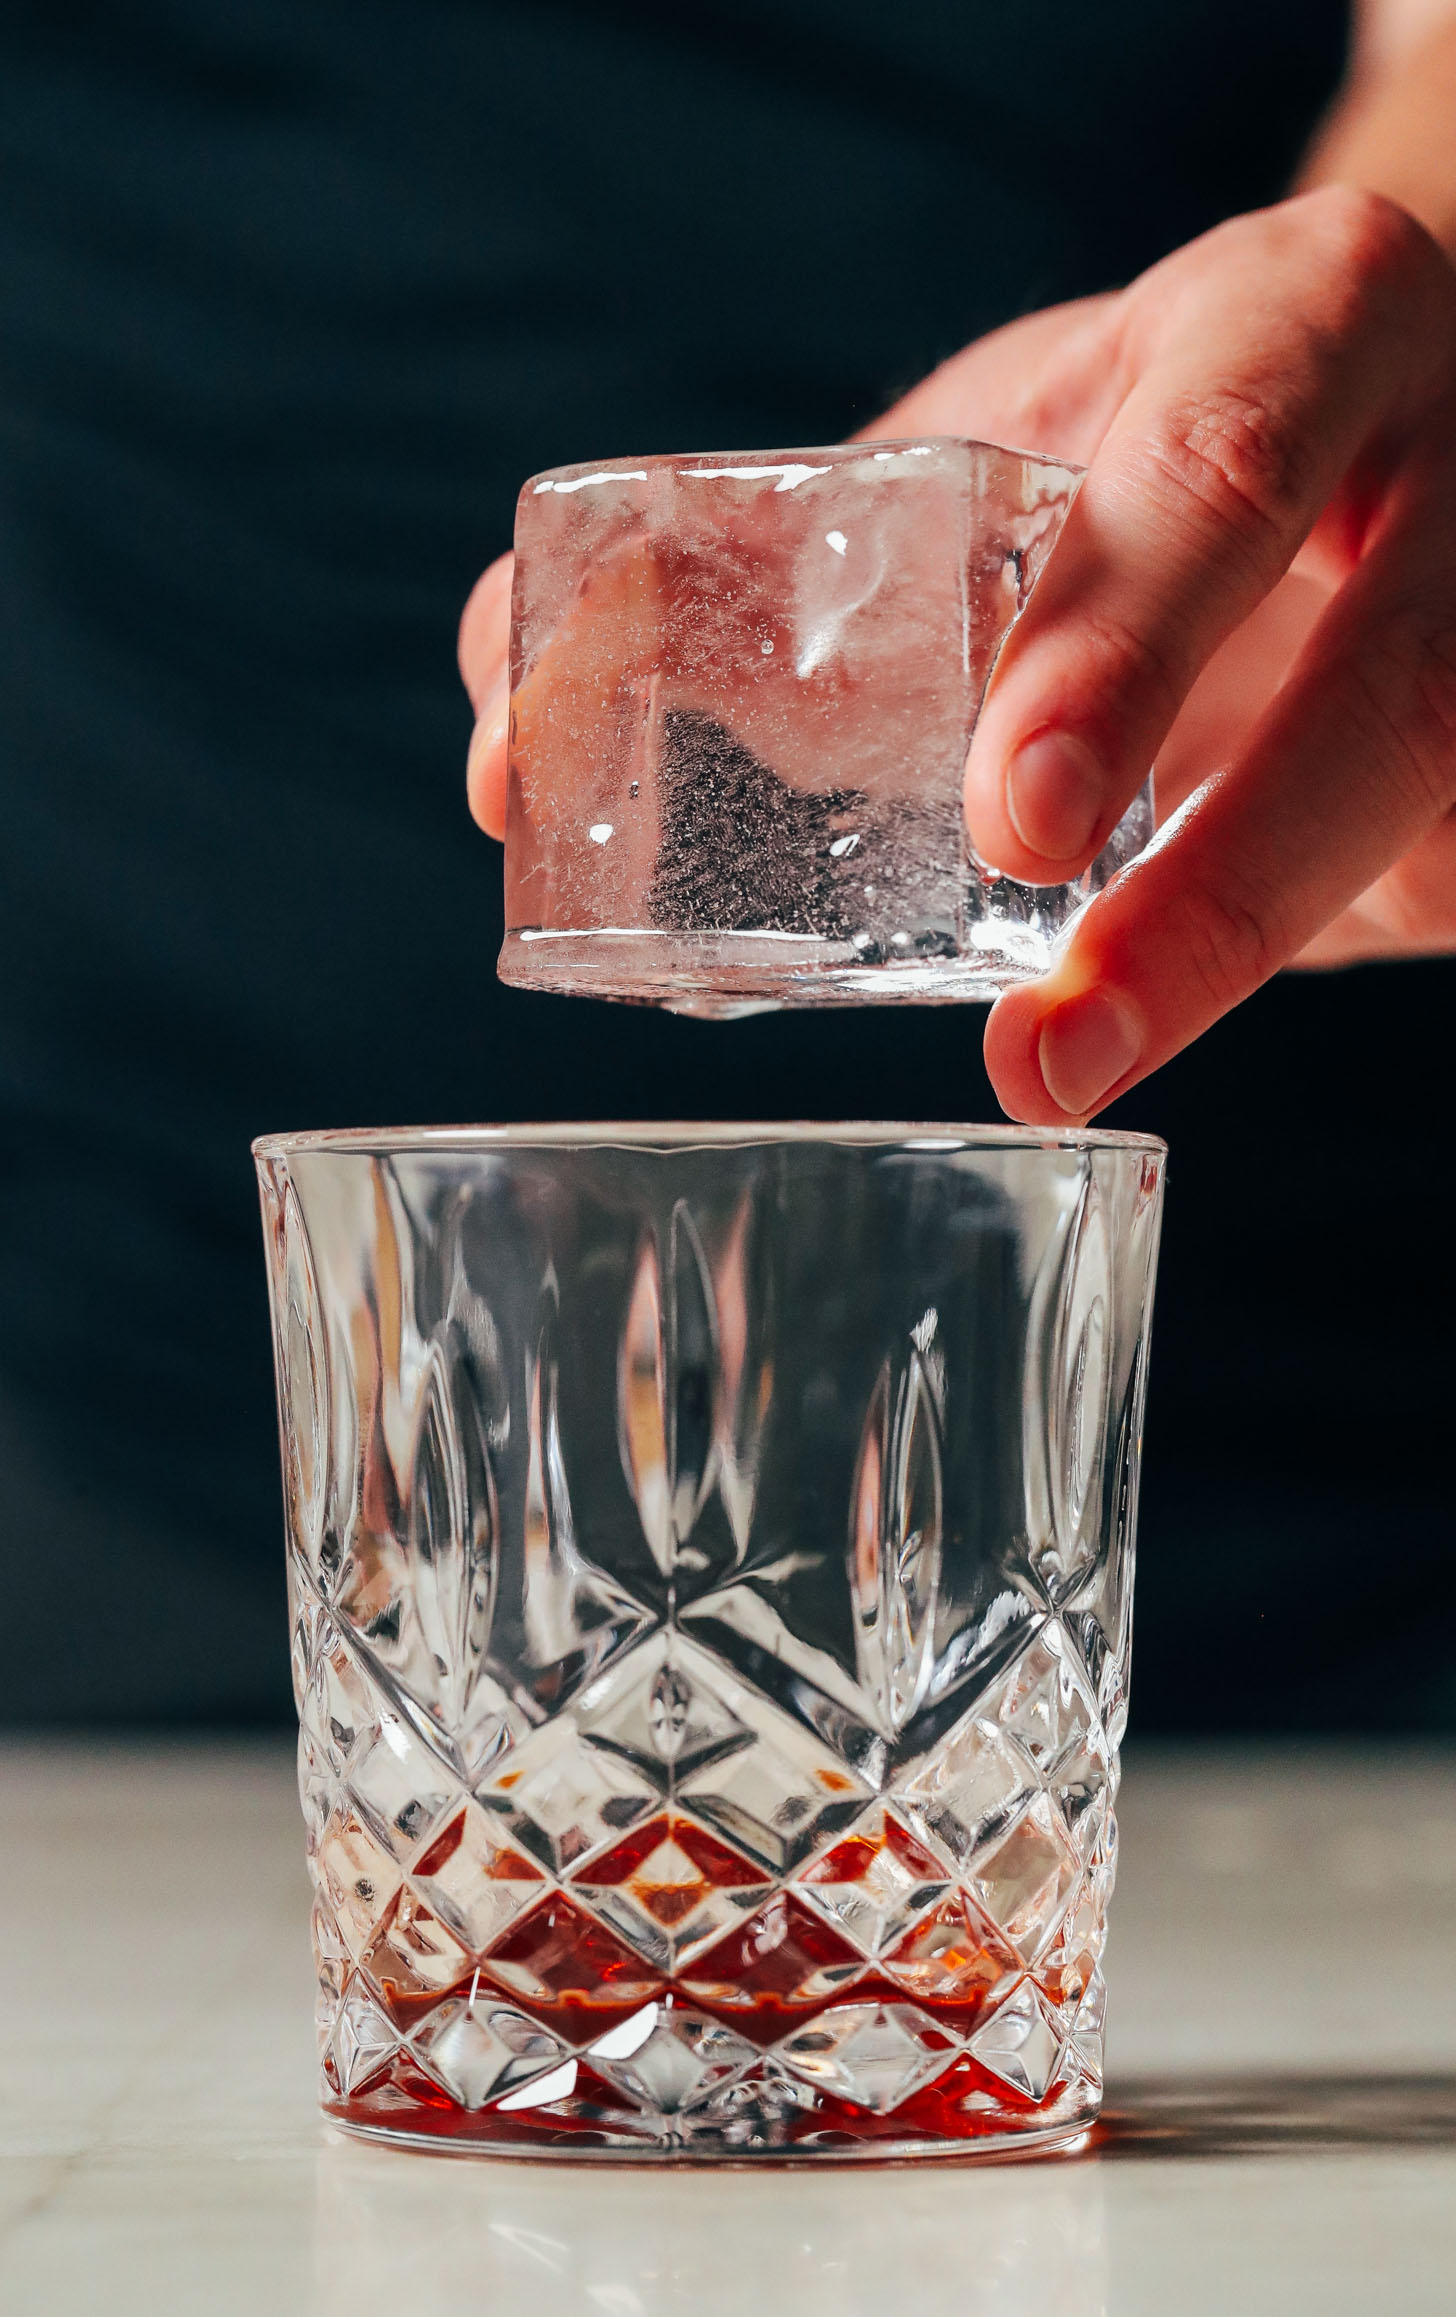 Adding a clear ice cube to a glass of bitters